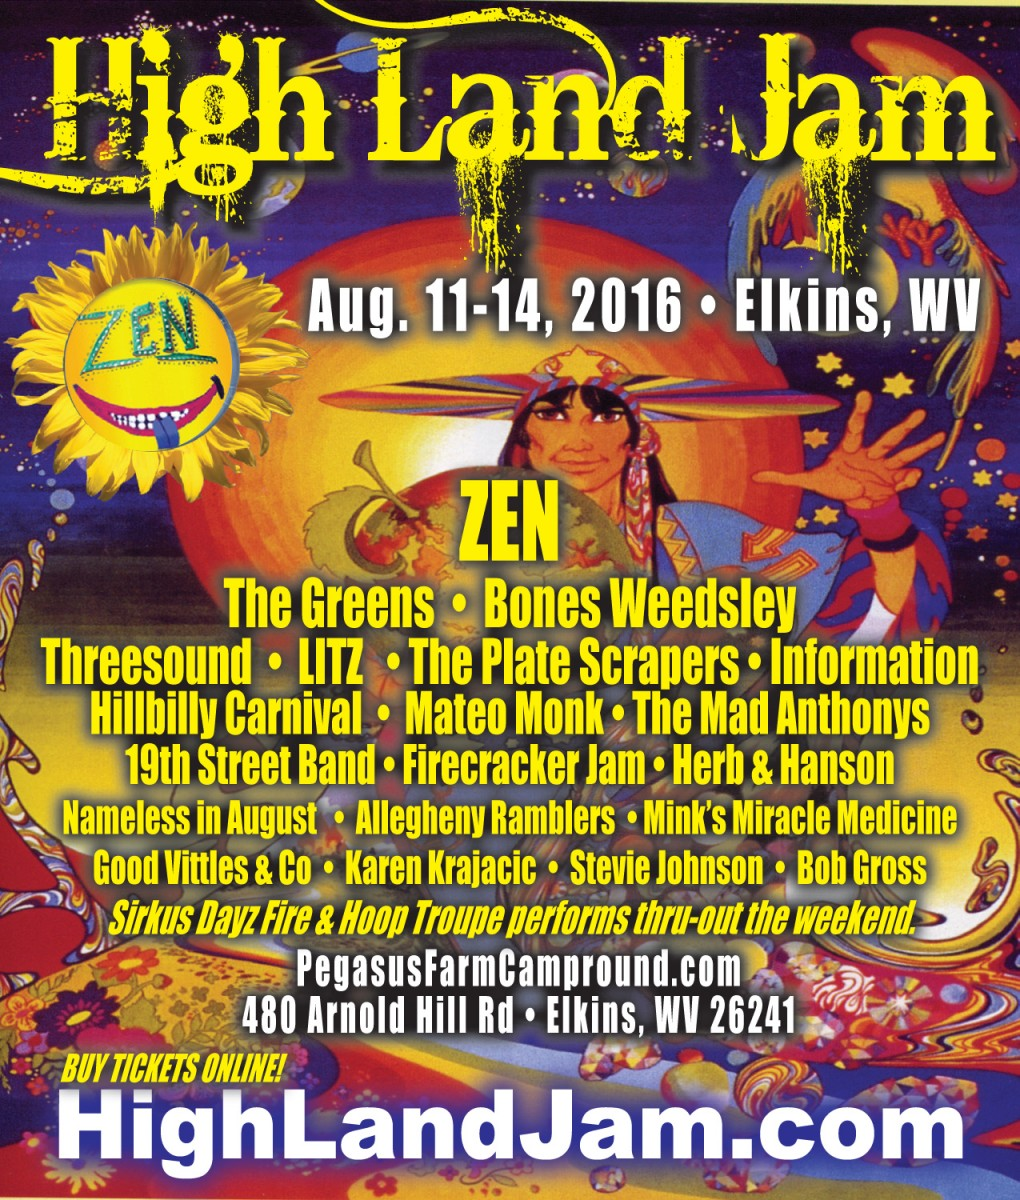 High Land Jam Preview THIS WEEKEND Aug 11-14, Elkins, WV